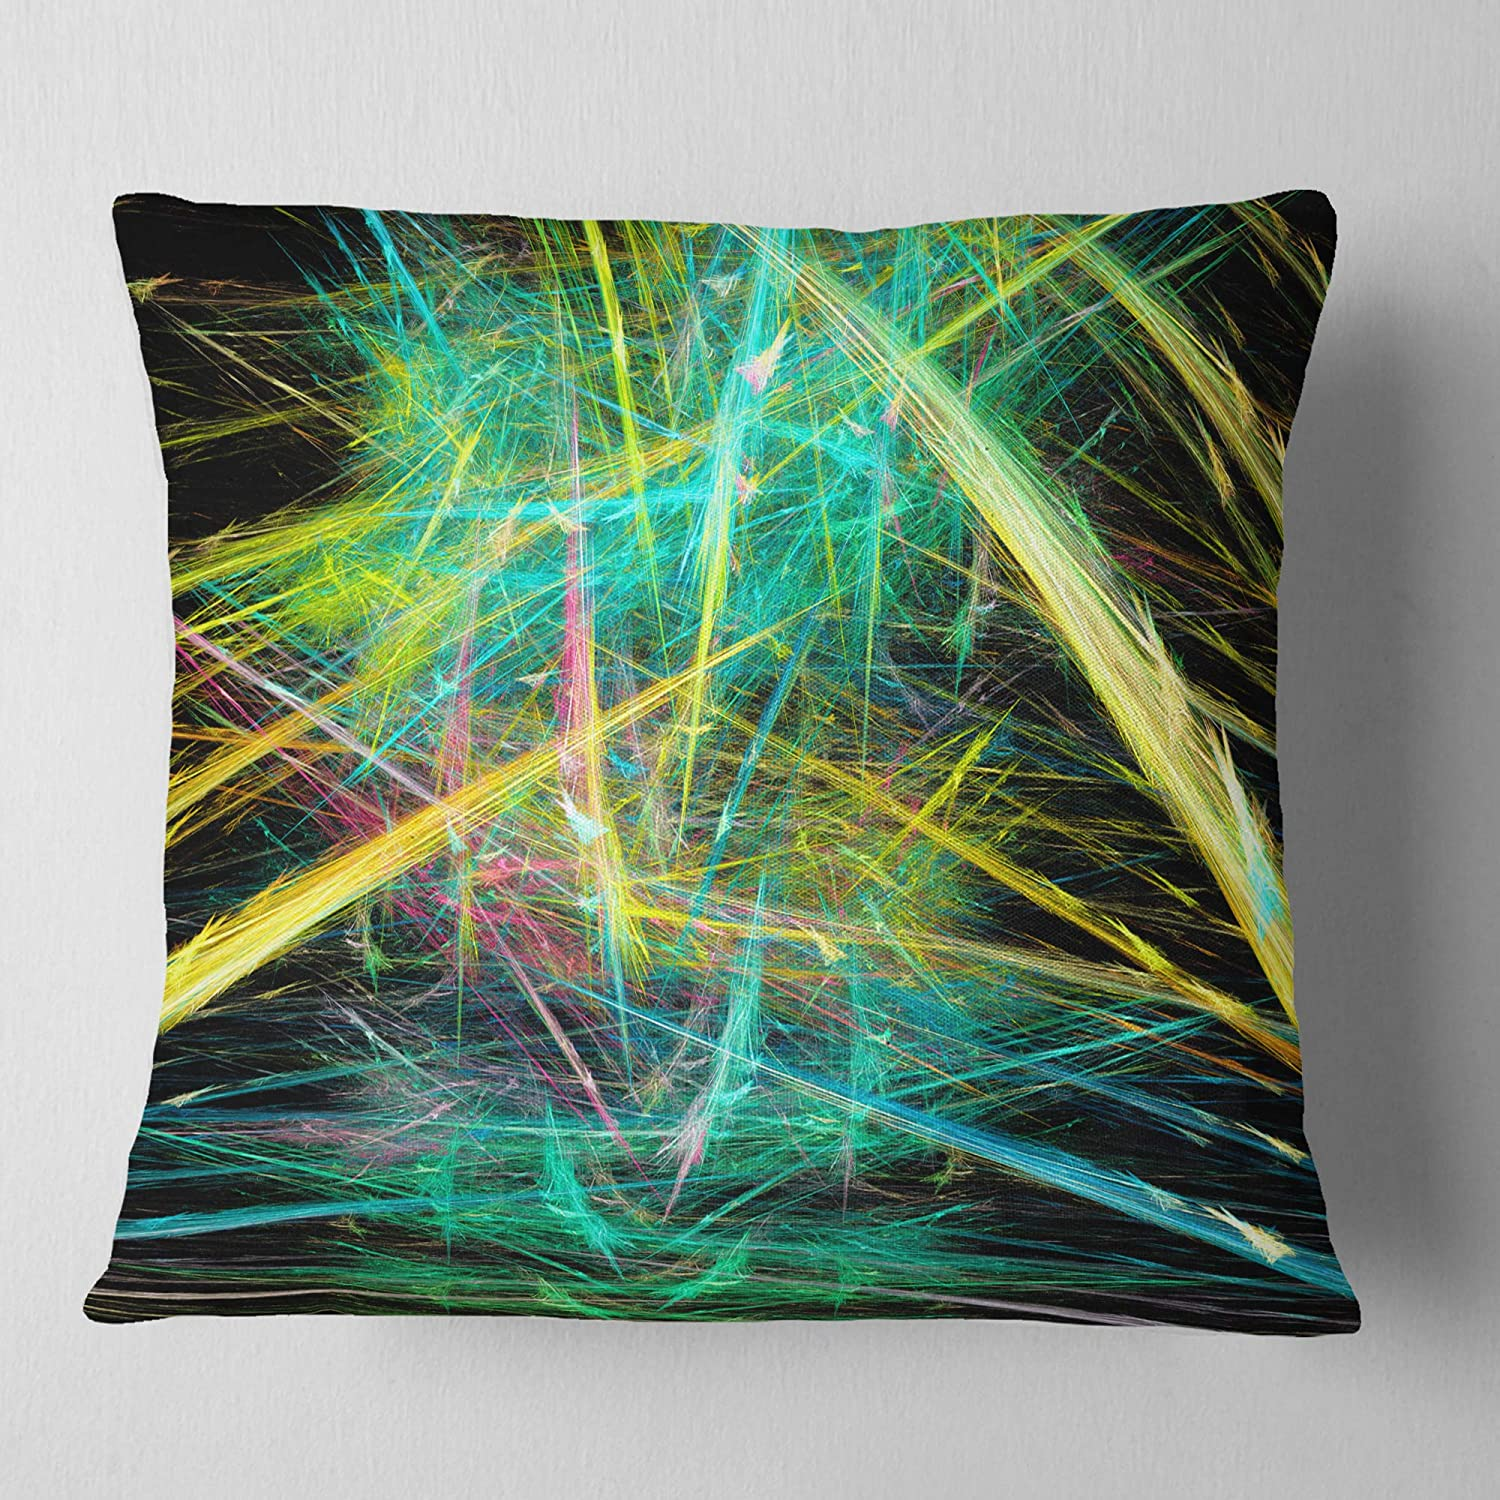 in Designart CU16168-26-26 Green Yellow Magical Fractal Pattern Abstract Cushion Cover for Living Room Sofa Throw Pillow 26 in Insert Printed On Both Side x 26 in